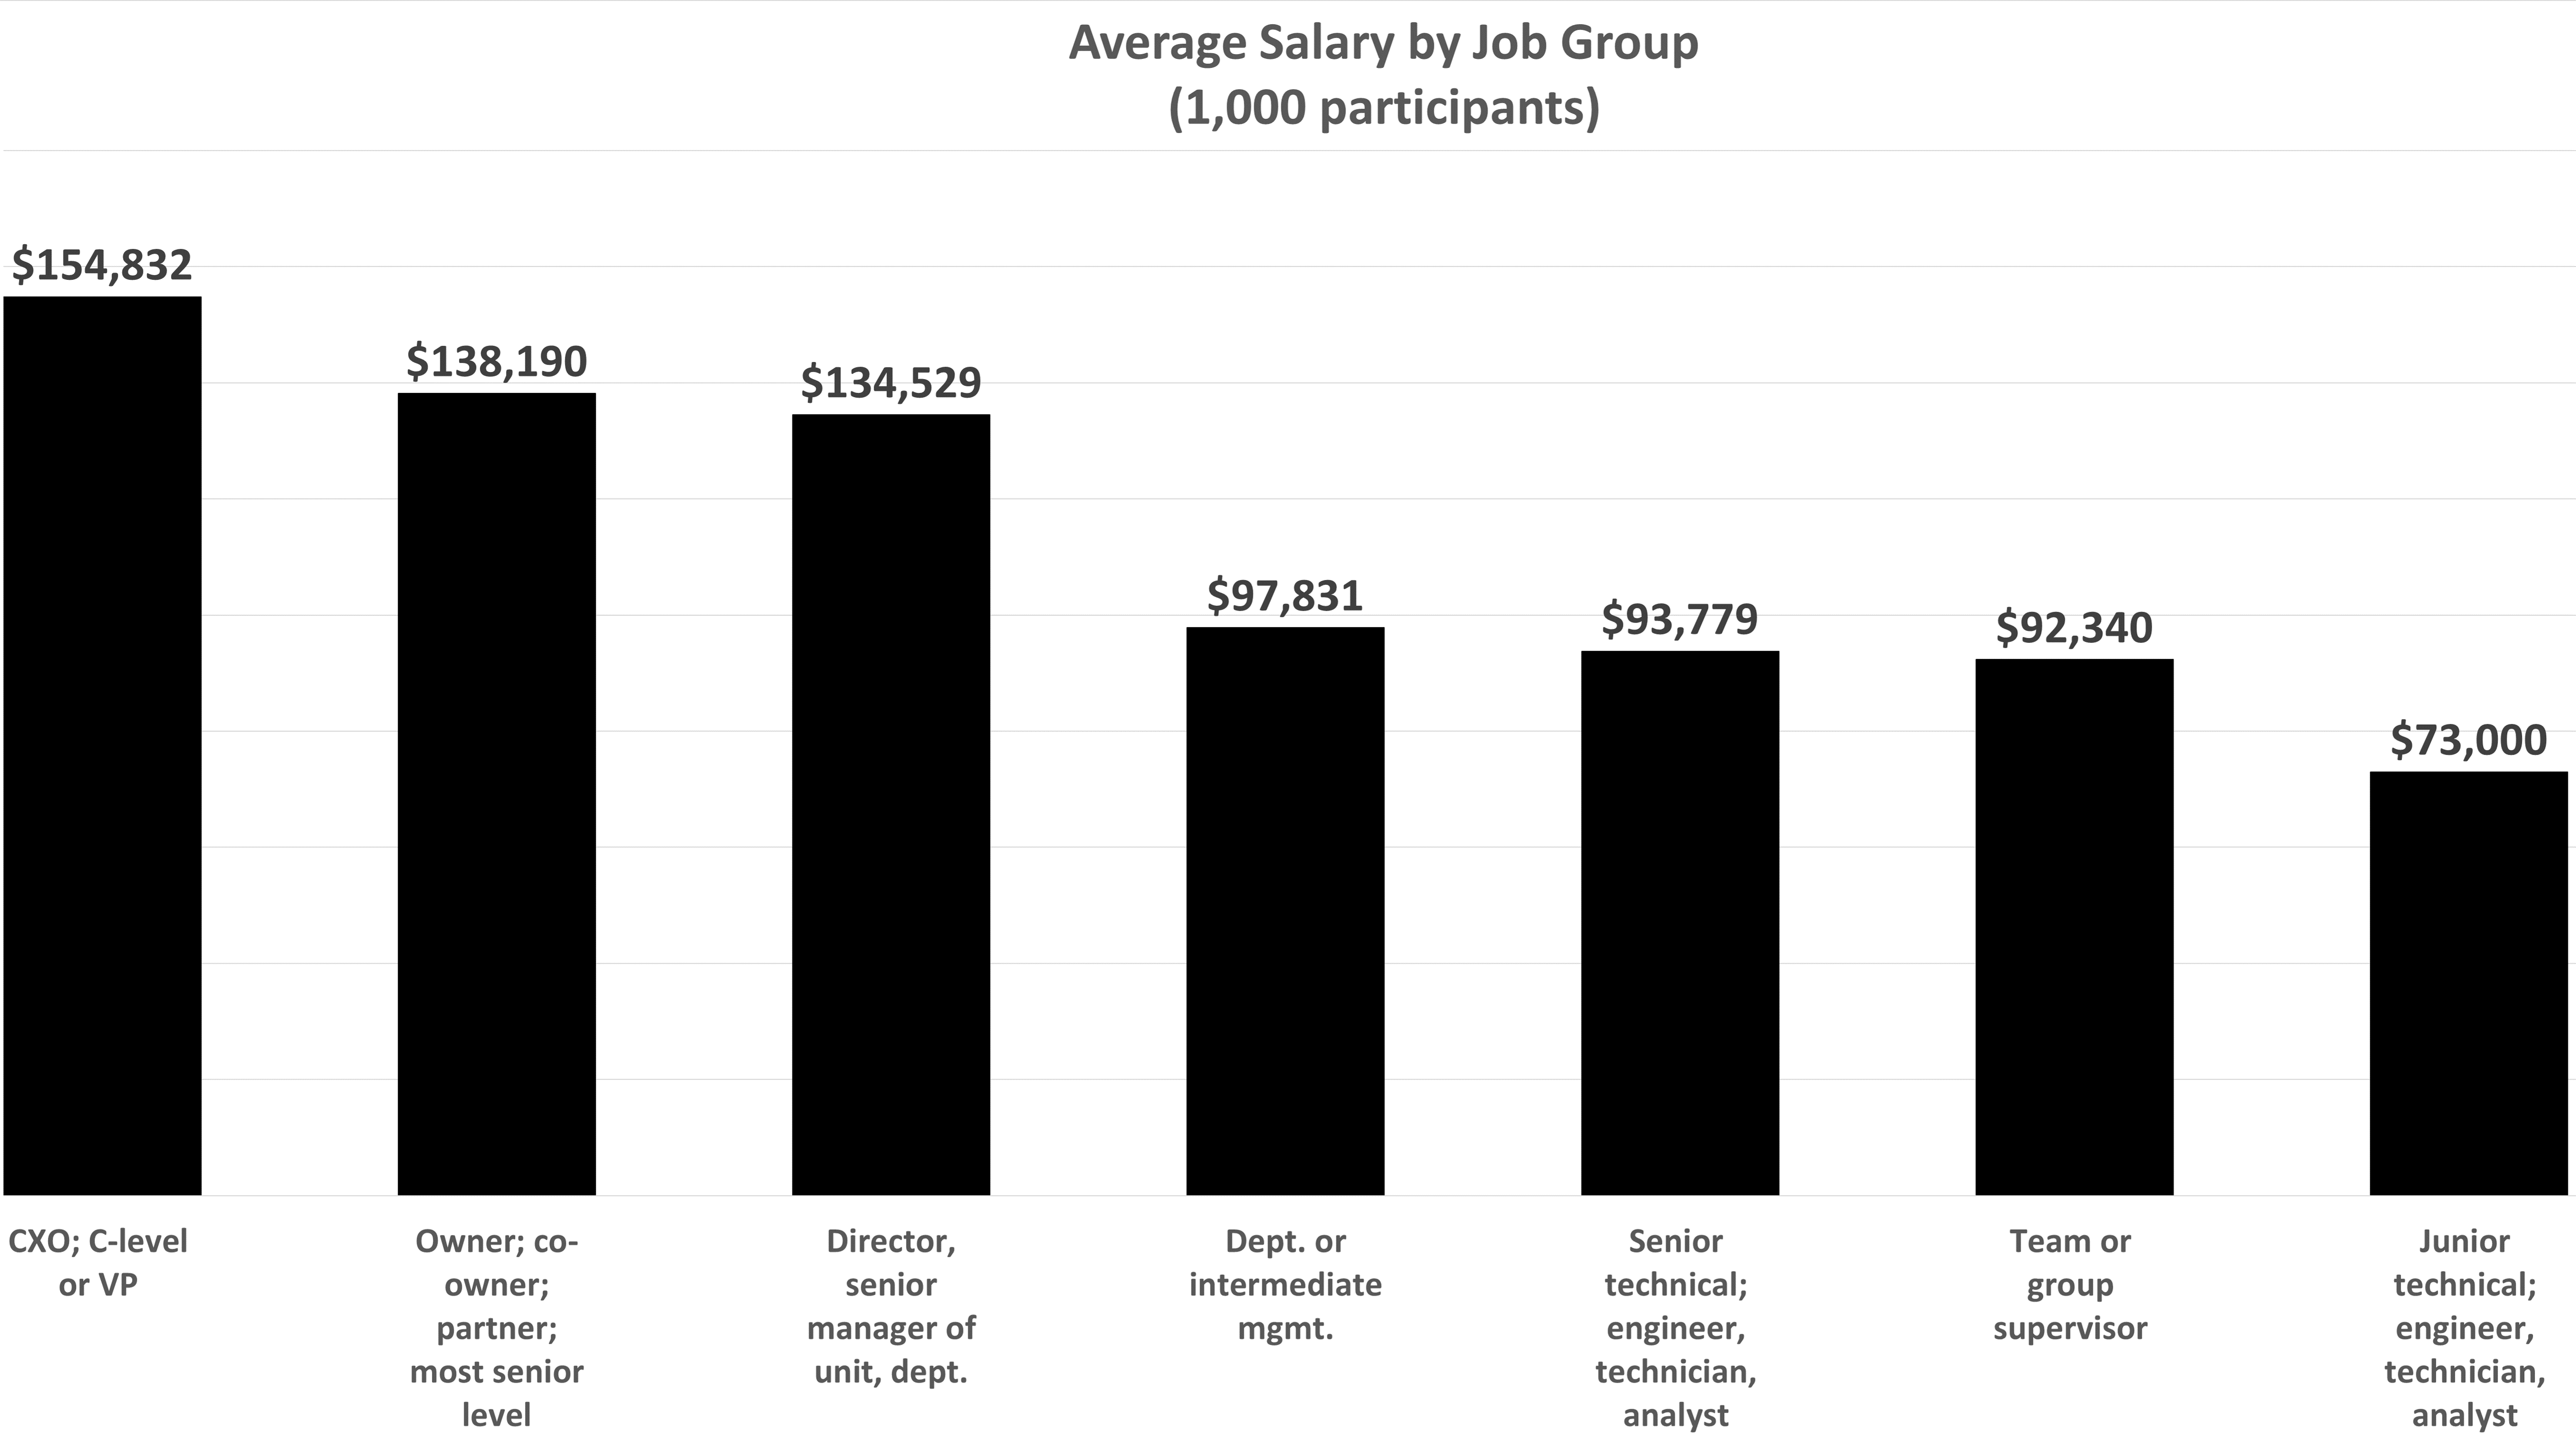 salary by job group